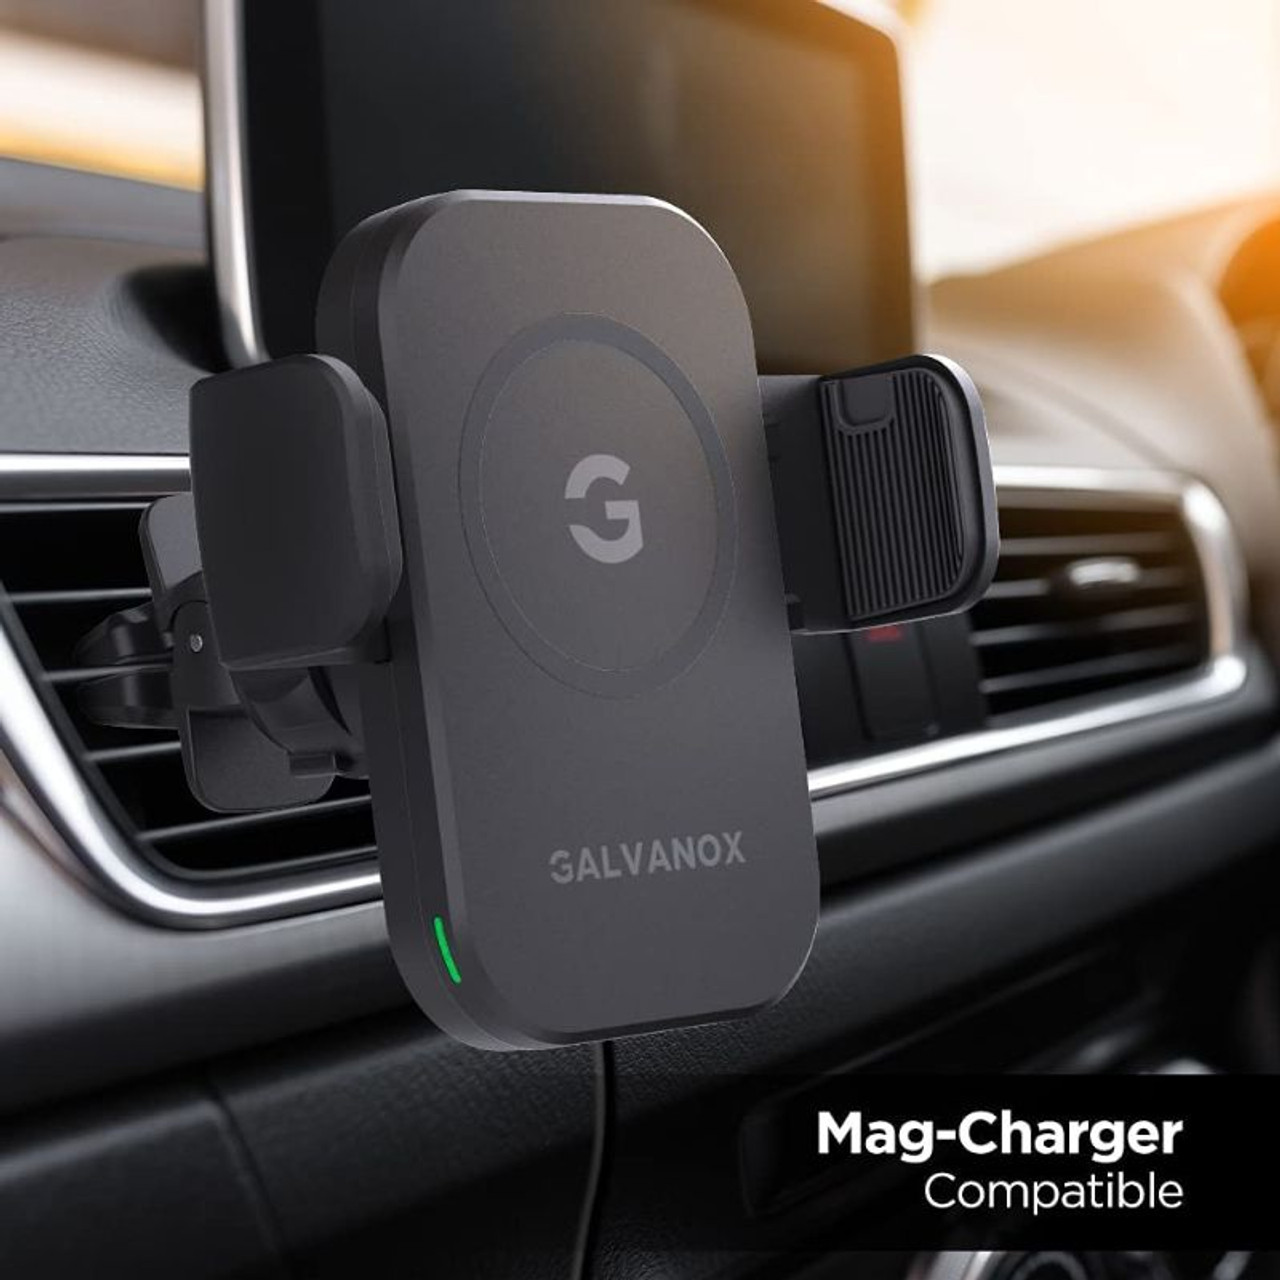 Galvanox Car Vent Mount Charger for MagSafe Cases, 15W Wireless Fast Charging for iPhone